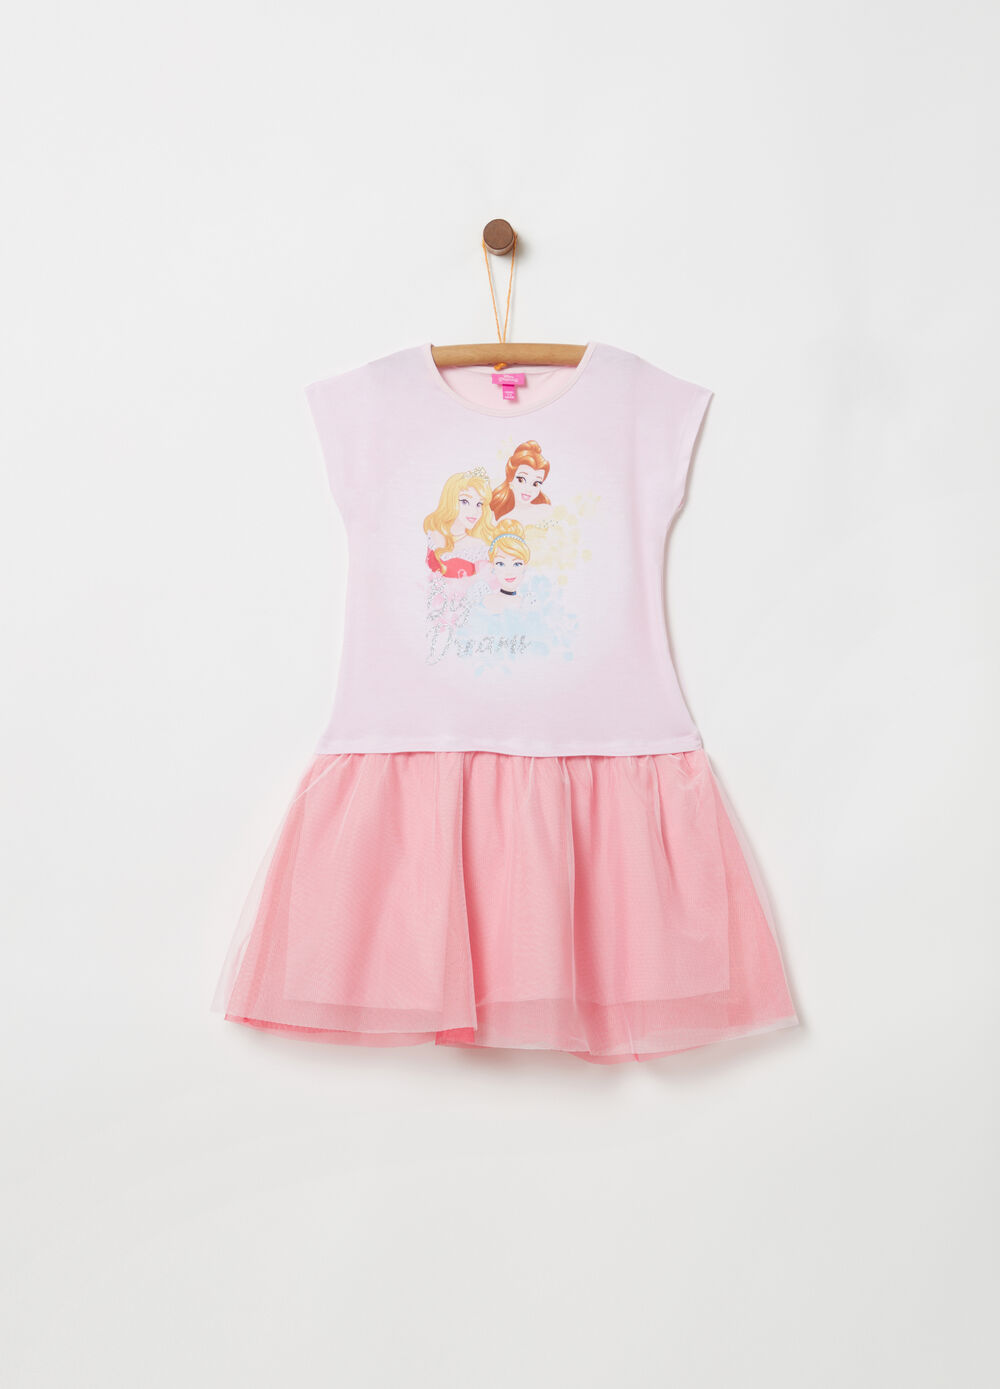 Outfit with tulle skirt and Disney print